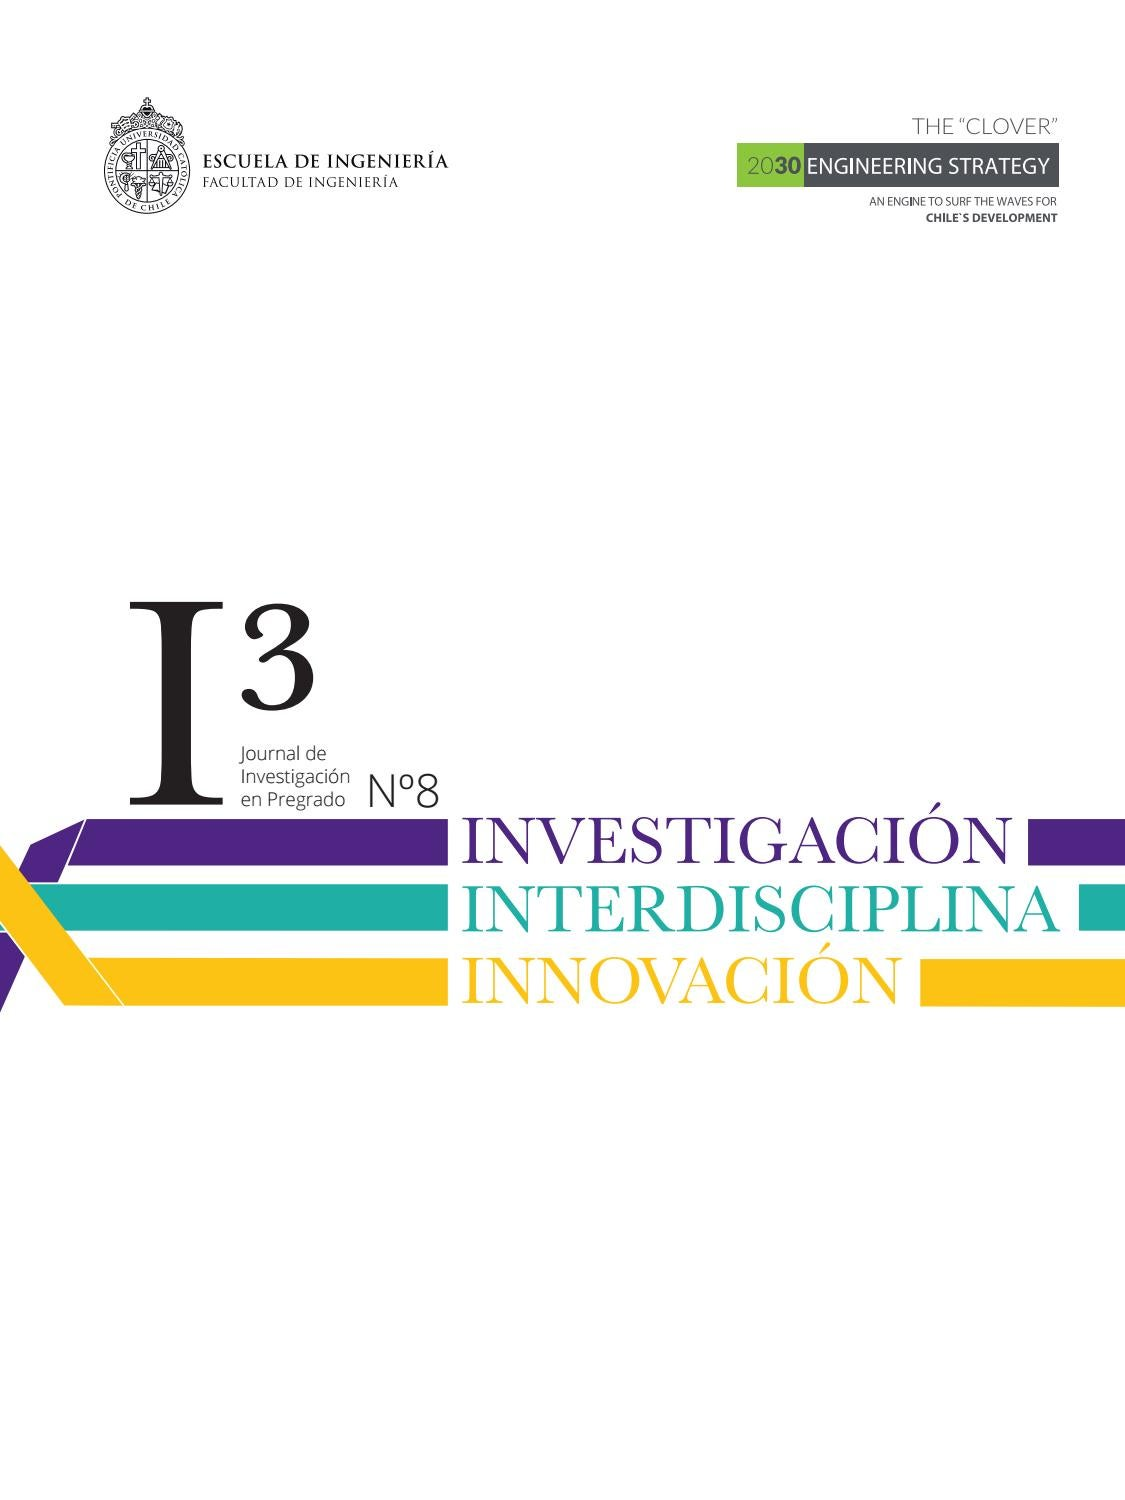 Journal i3 - Edición n°8 Escuela de Ingeniería UC by Ingenieria UC ...